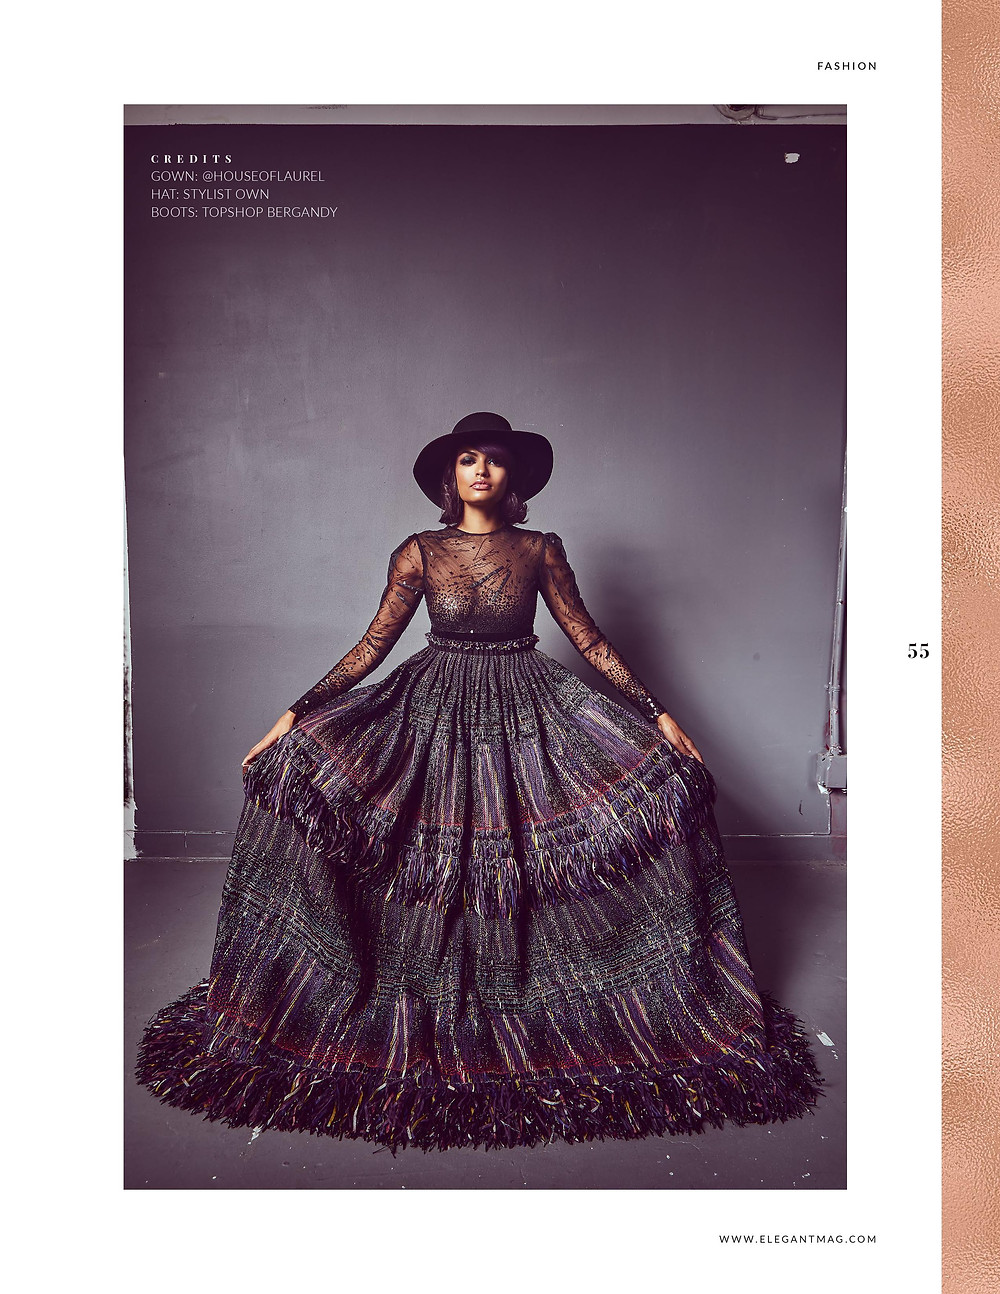 Fashion model Sianna Nelson for Elegant Magazine by Patrick Patton and wearing: Gown - Rajo Laurel @houseoflaurel Hat –stylist own Boots –TopShop bergandy